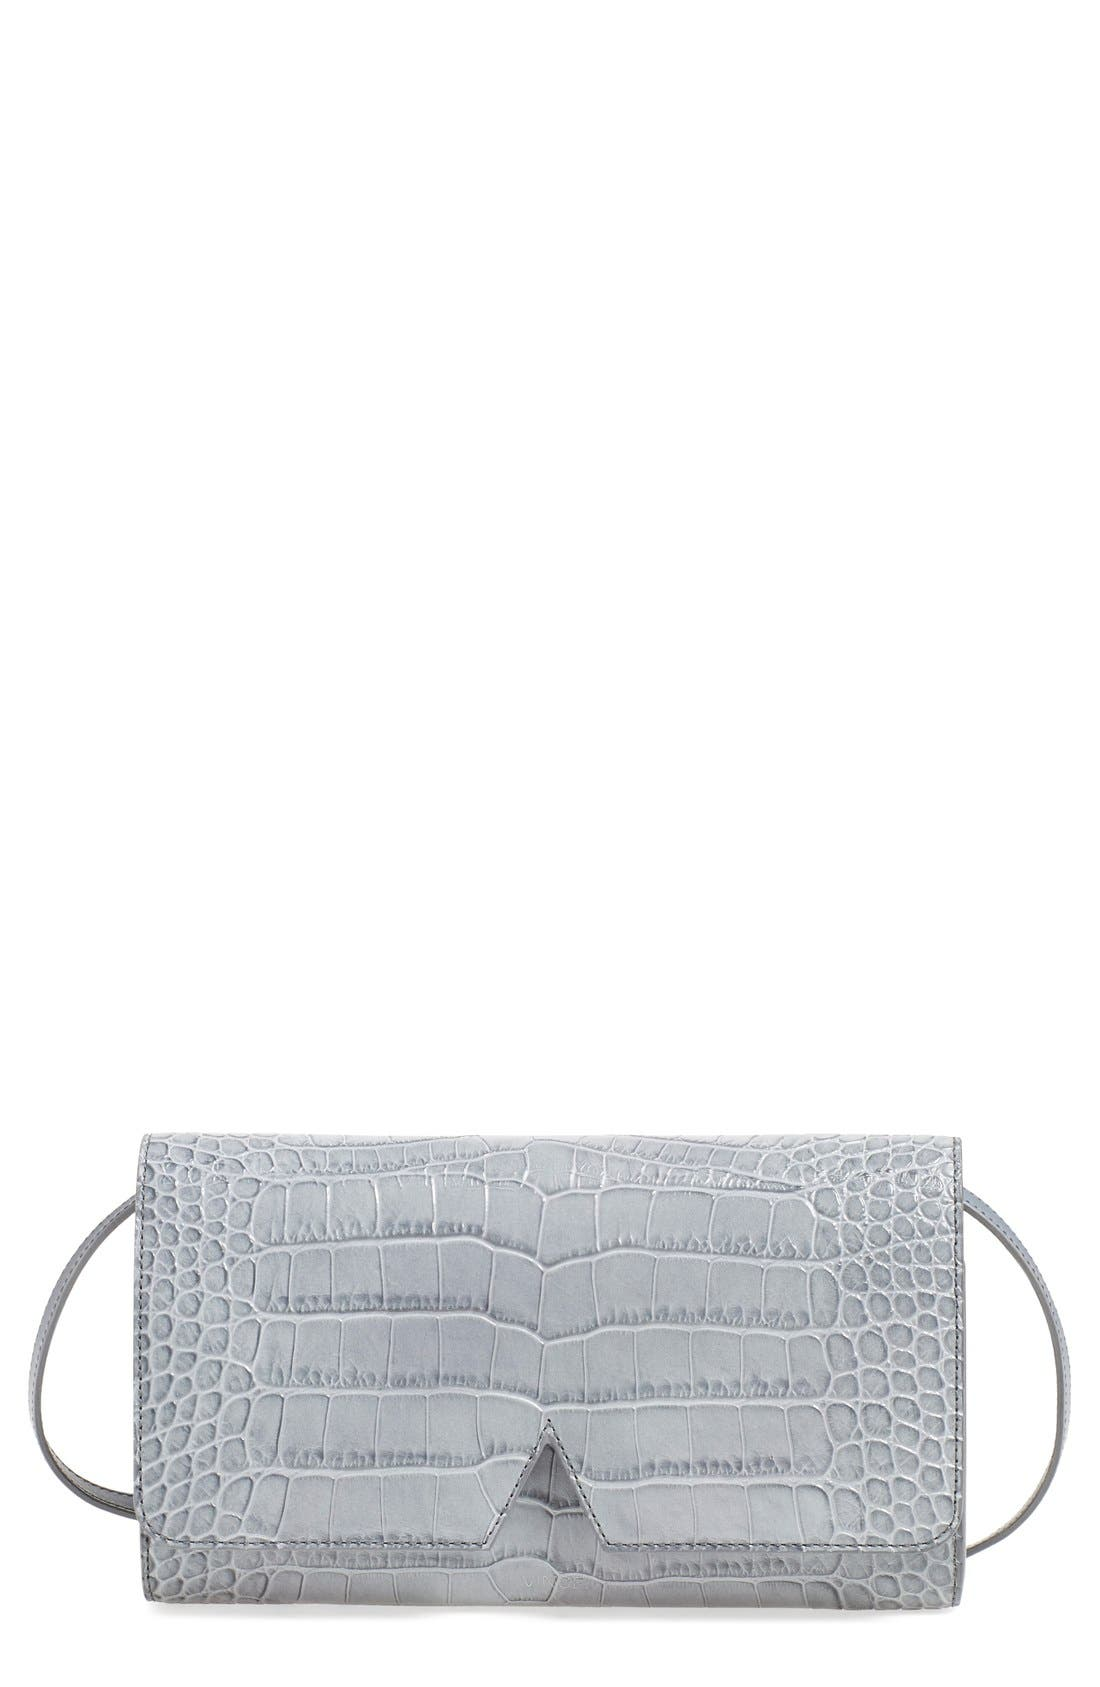 Main Image - VinceCrocEmbossed Convertible Clutch